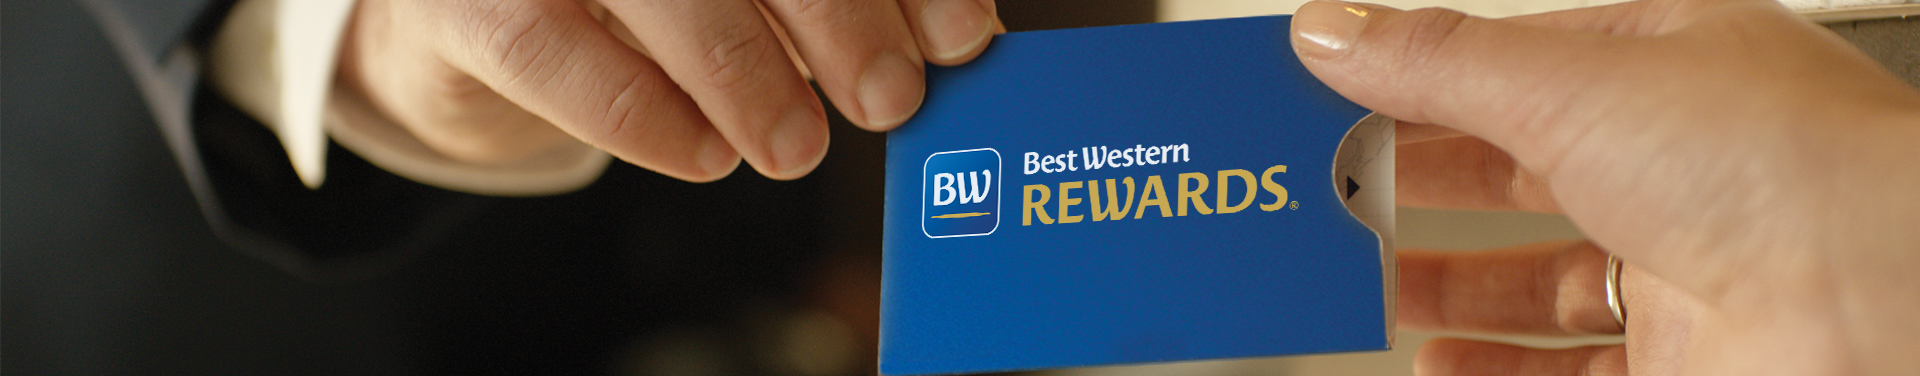 Taryfa Best Western Rewards